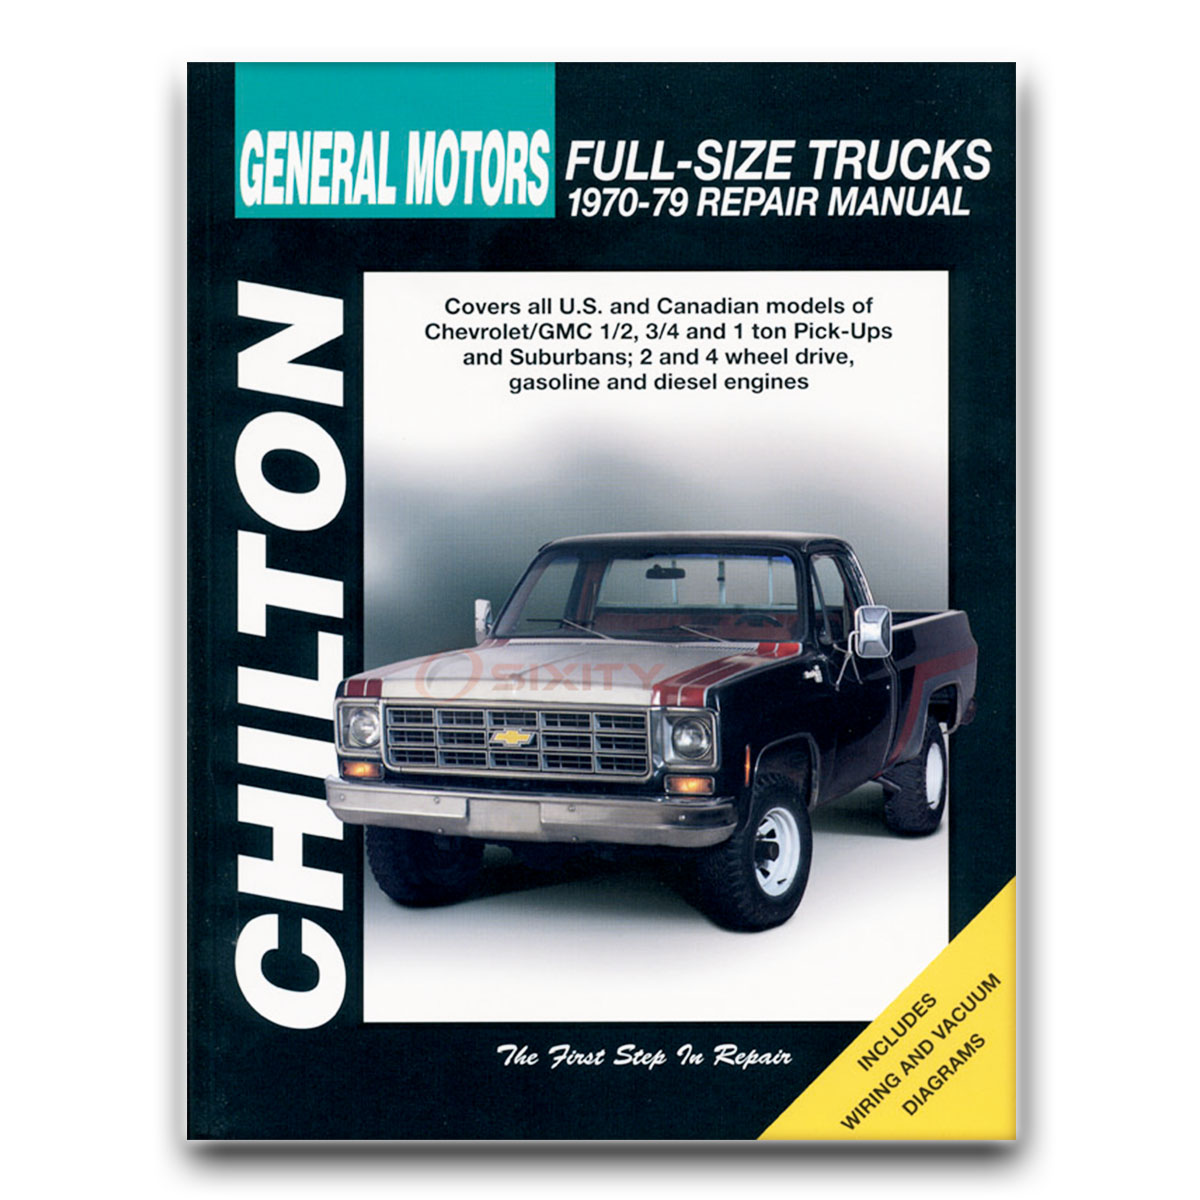 1979 chevy truck manual data wiring diagrams u2022 rh naopak co 1973 Chevrolet Truck 1981 Chevrolet Truck